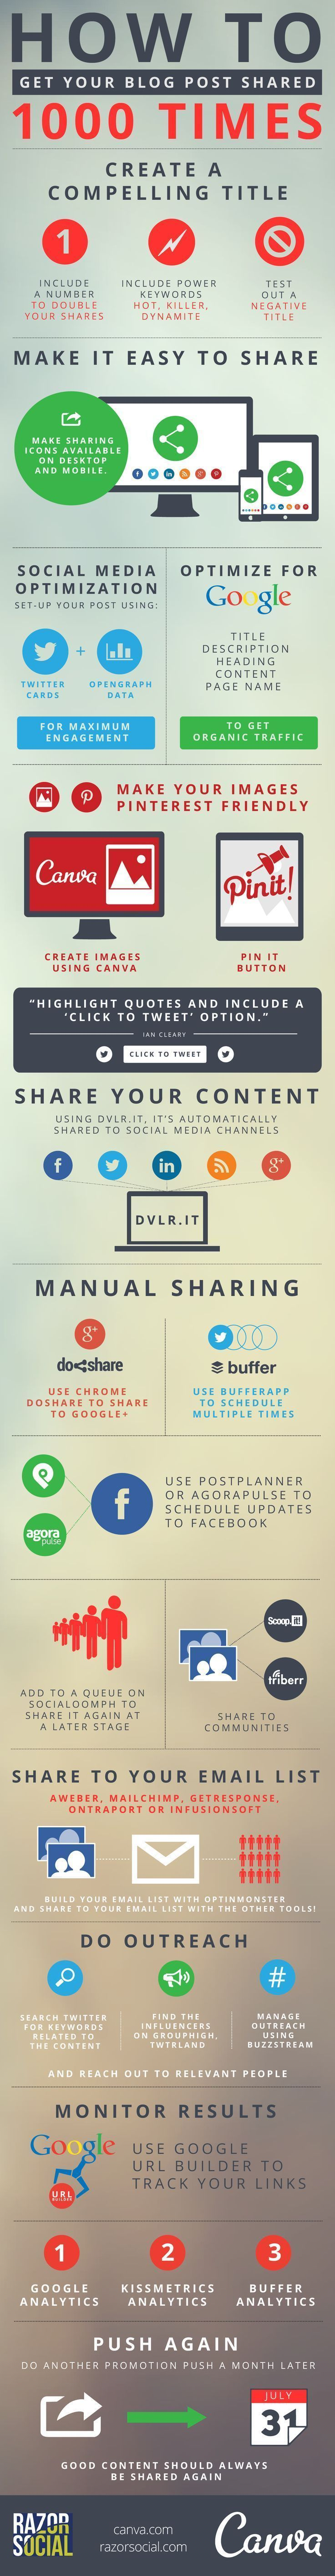 How to Get Your Blog Post Shared 1000 Times #Infographic